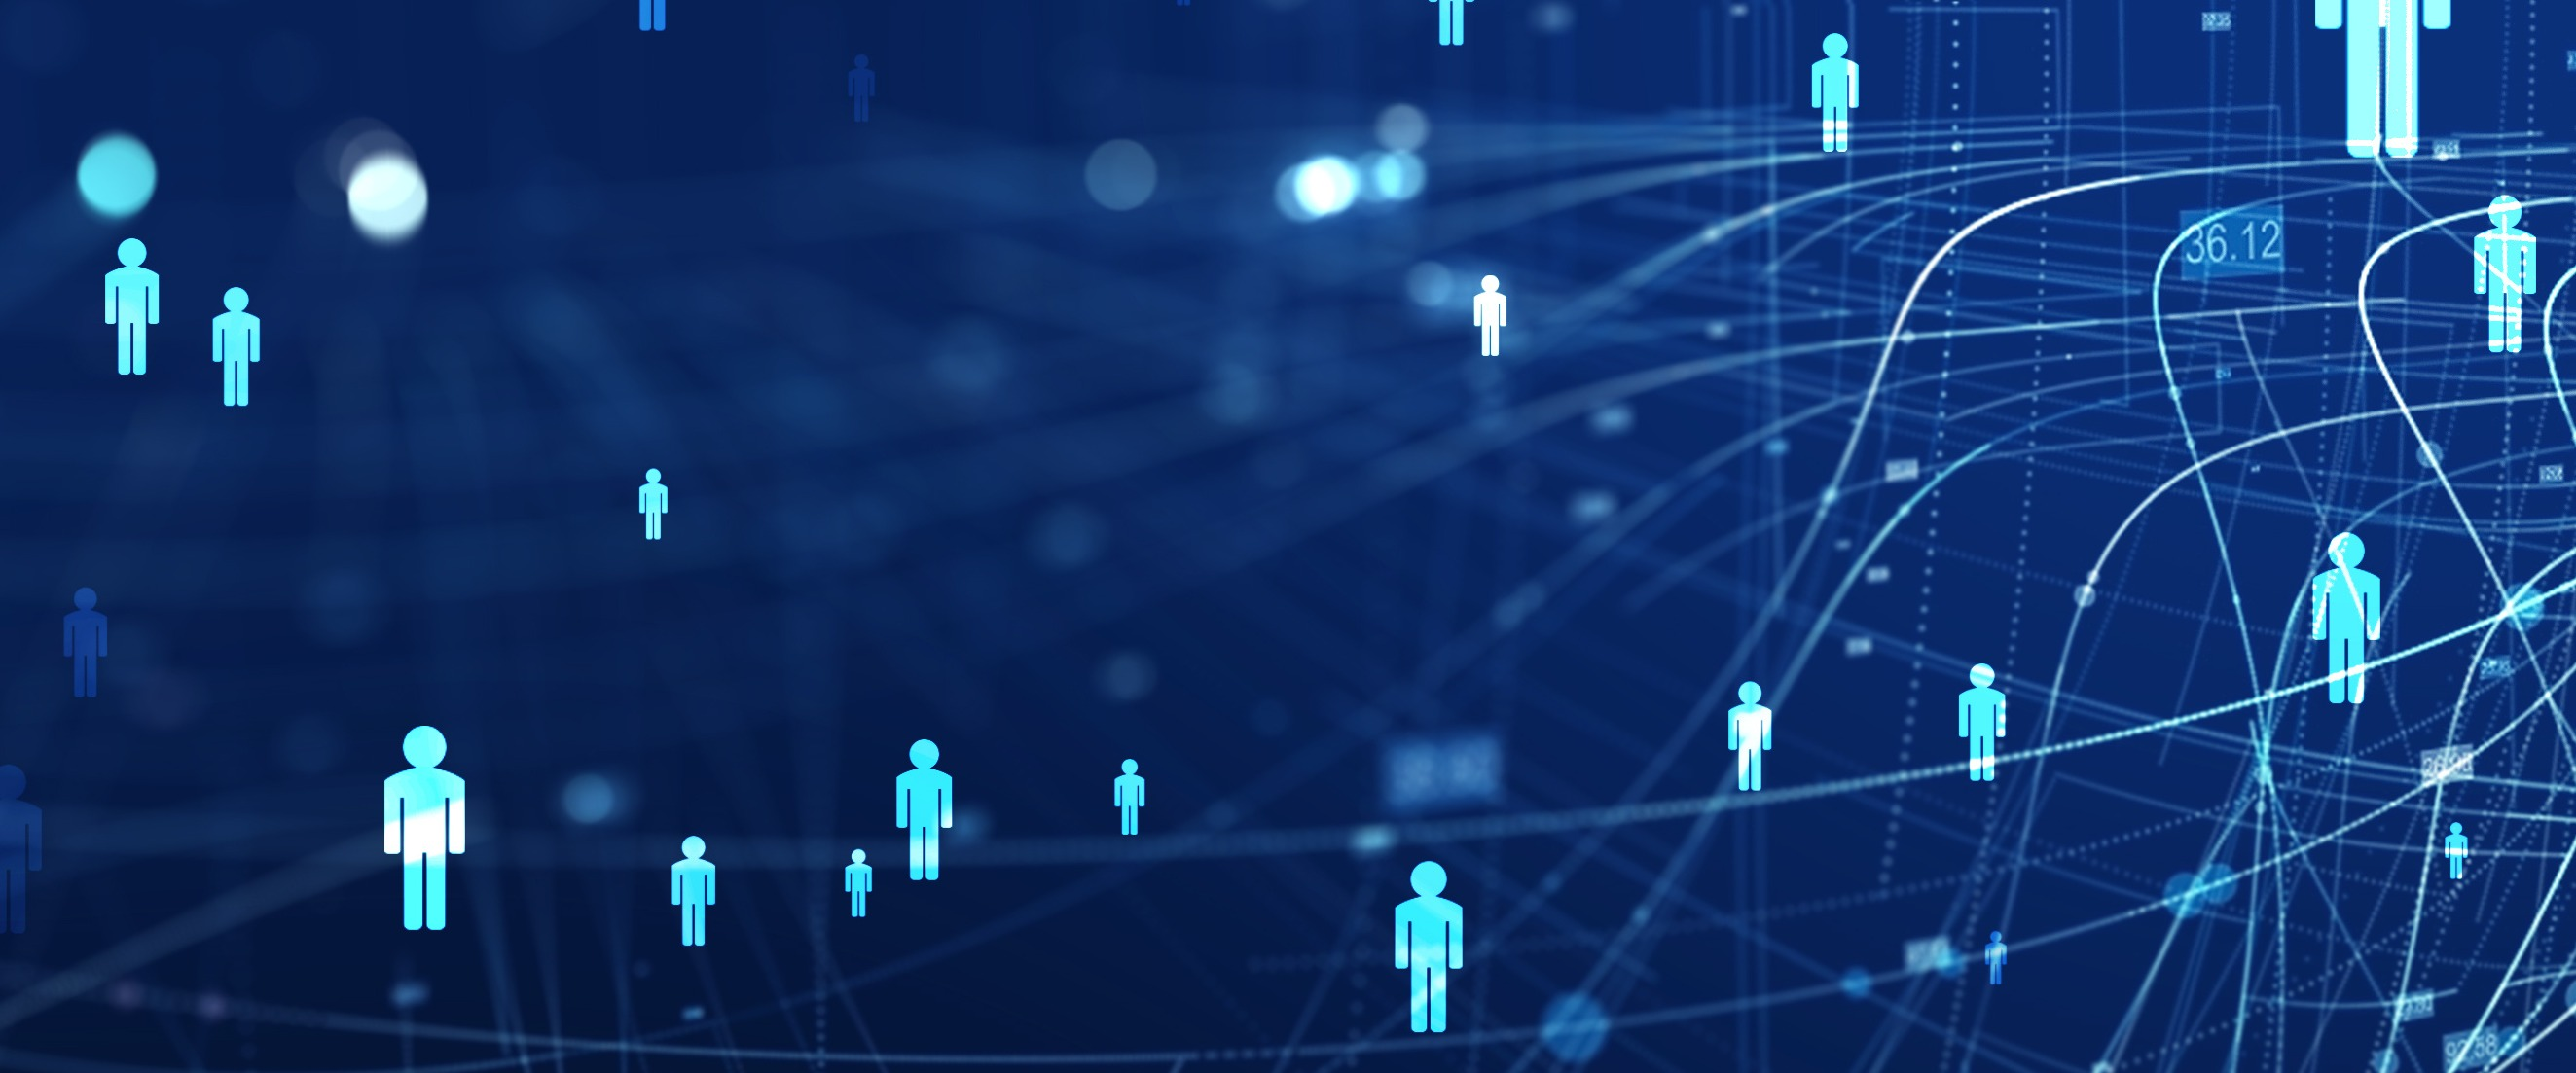 Background stock image for Equinix